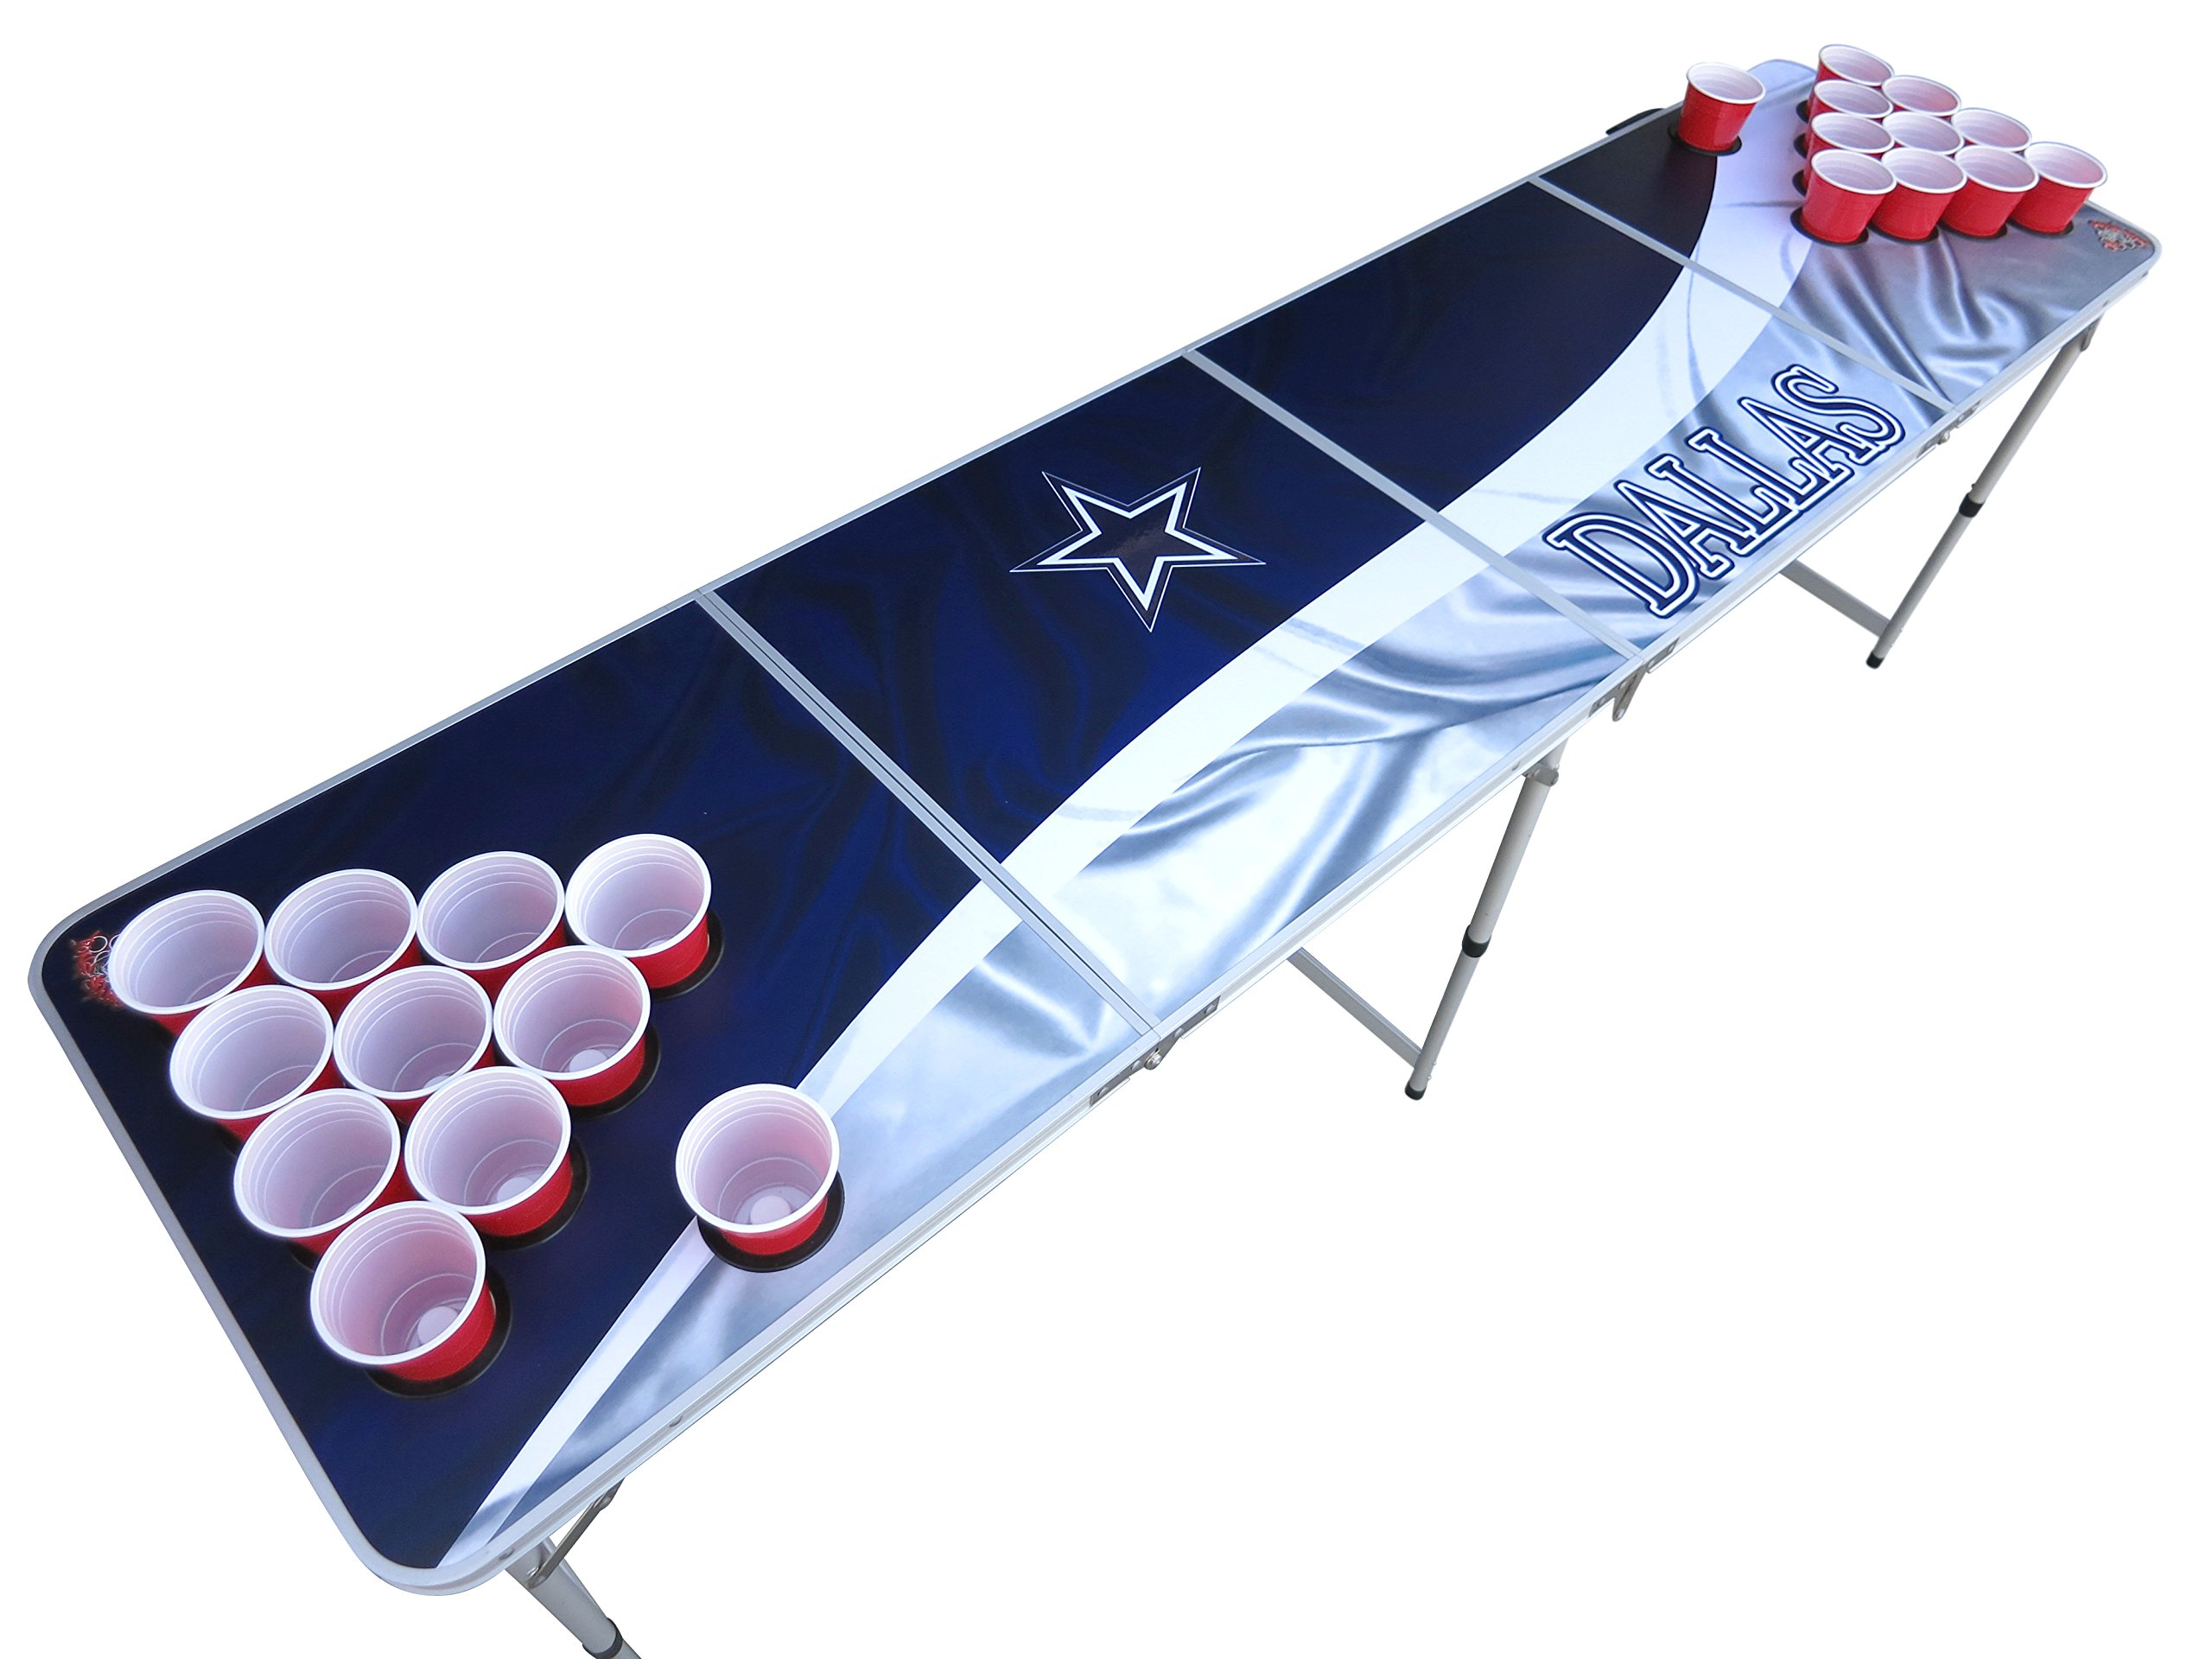 Dallas Beer Pong Table with Holes, 2x8, Aluminum, Portable